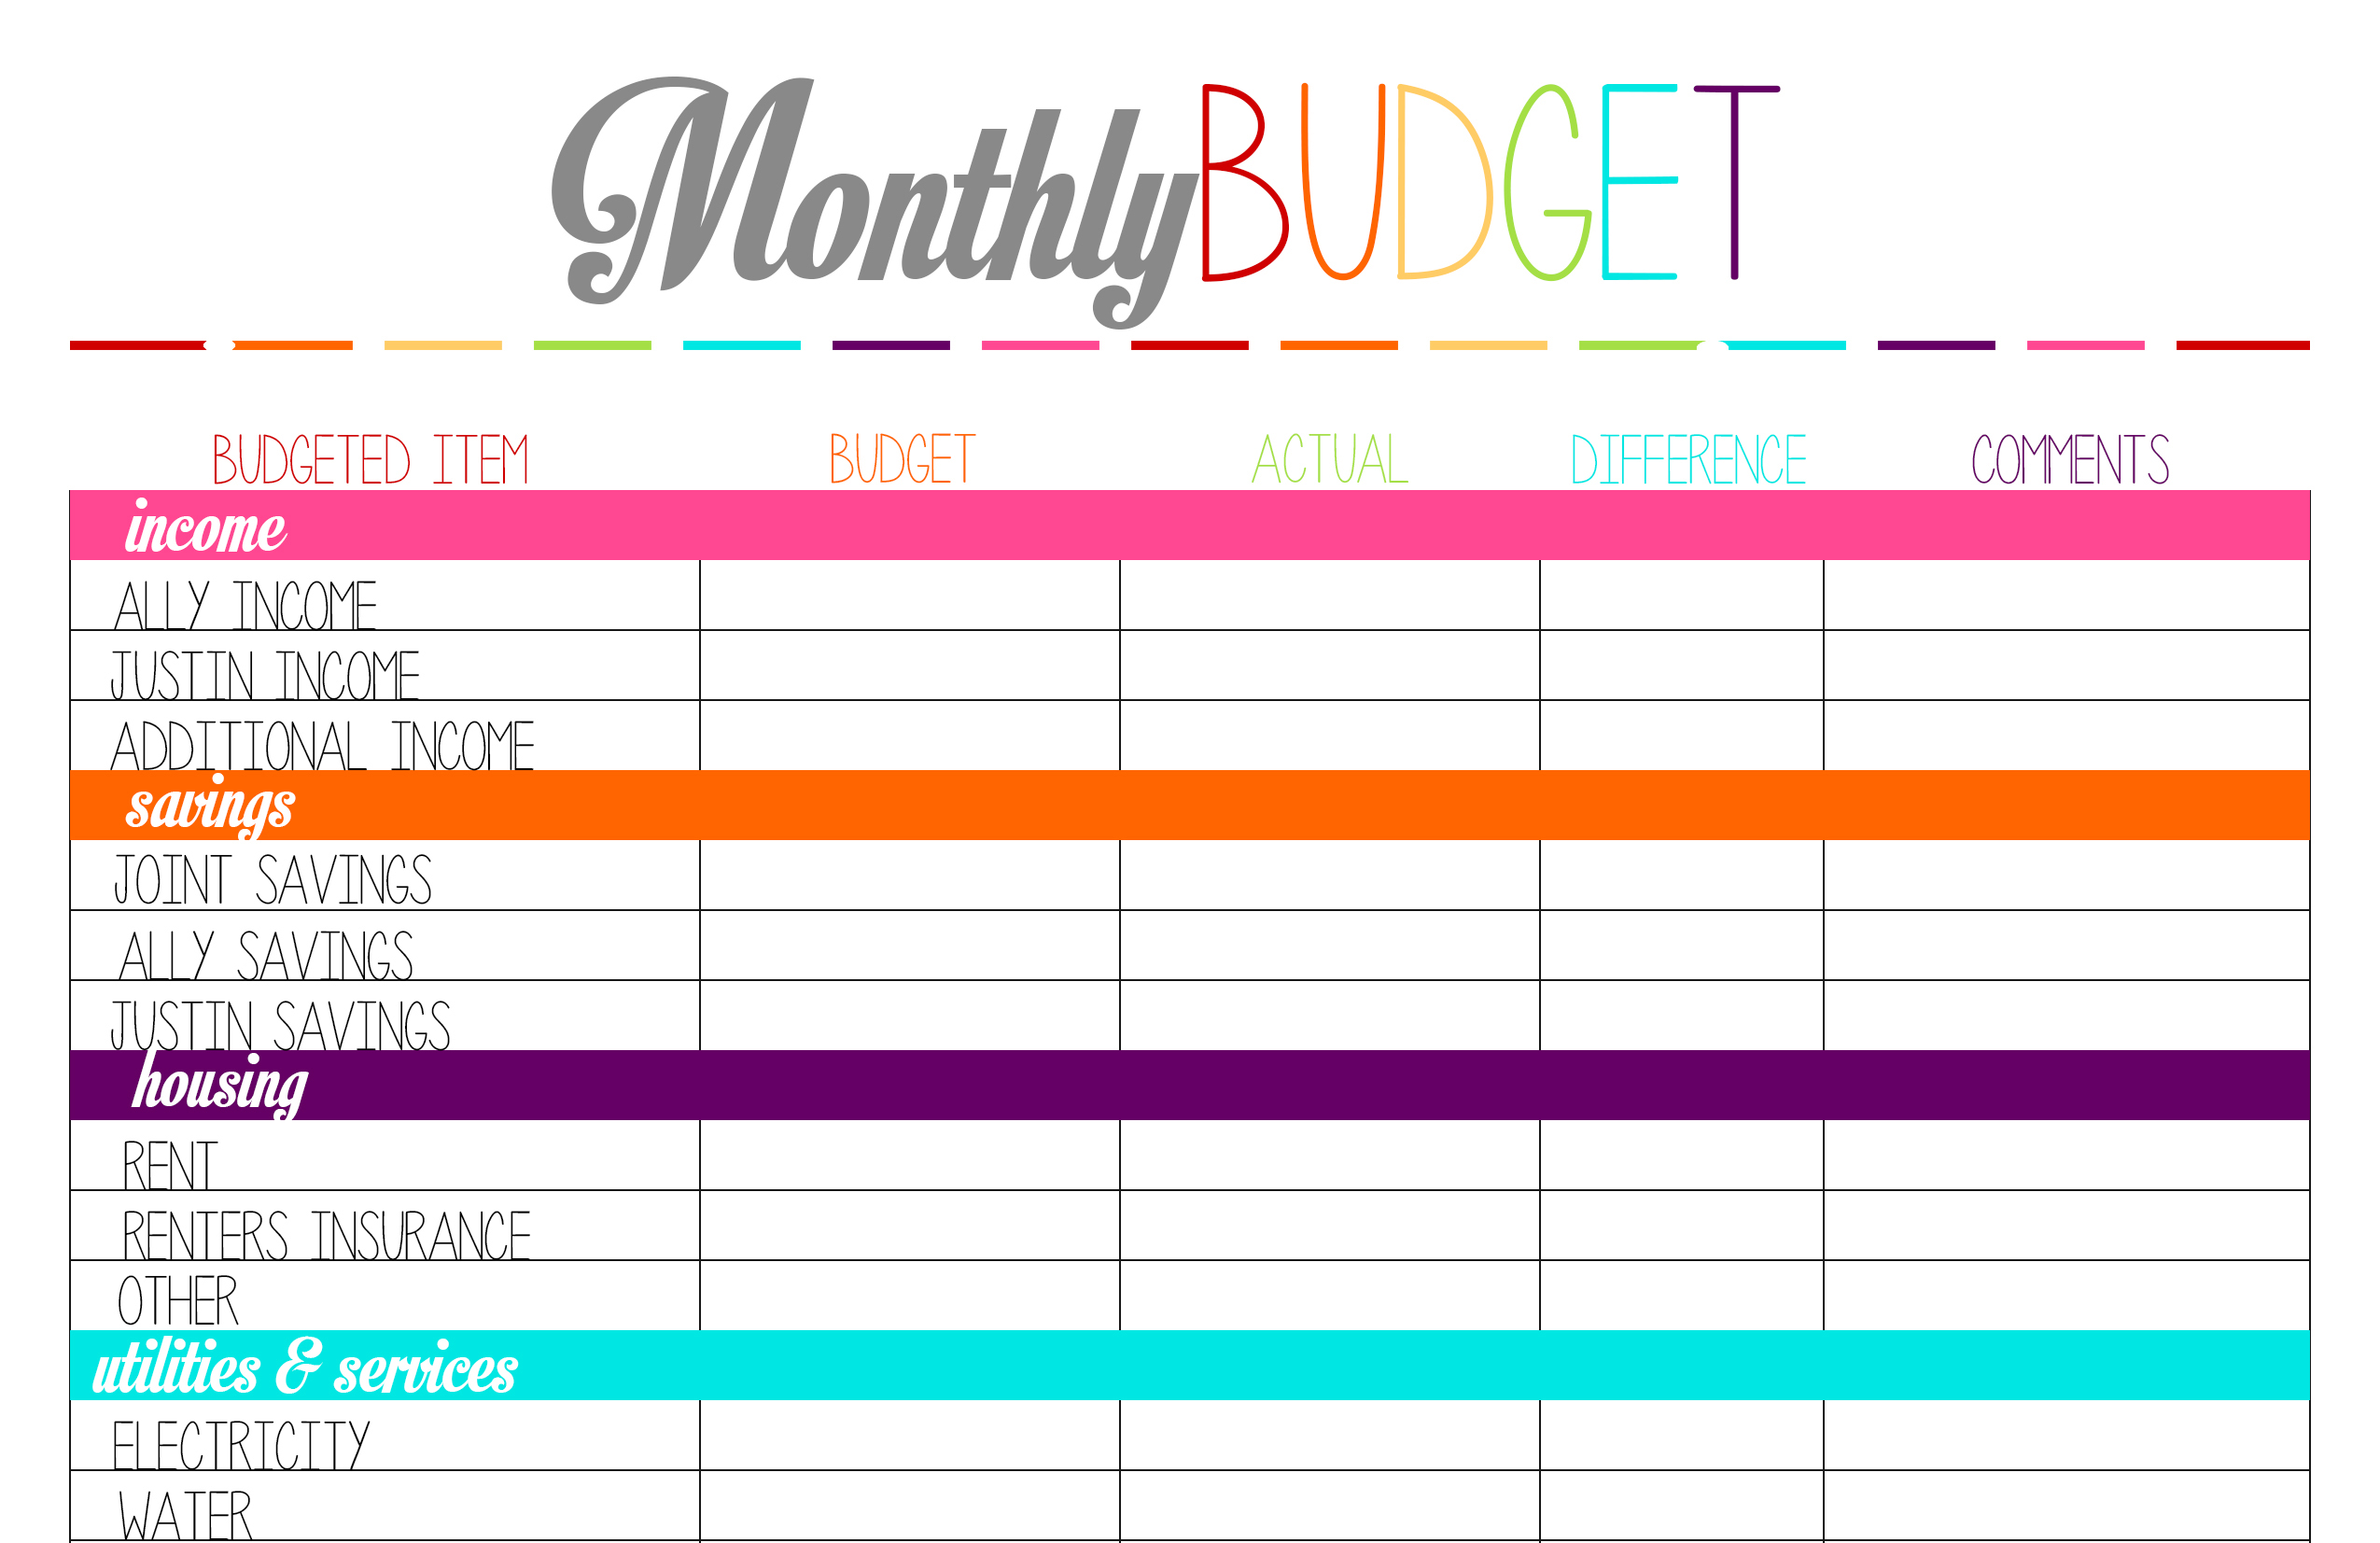 worksheet Monthly Budget Worksheet Printable printable monthly budget worksheet abitlikethis our homekeeping binder and embracing a fresh new take on budget